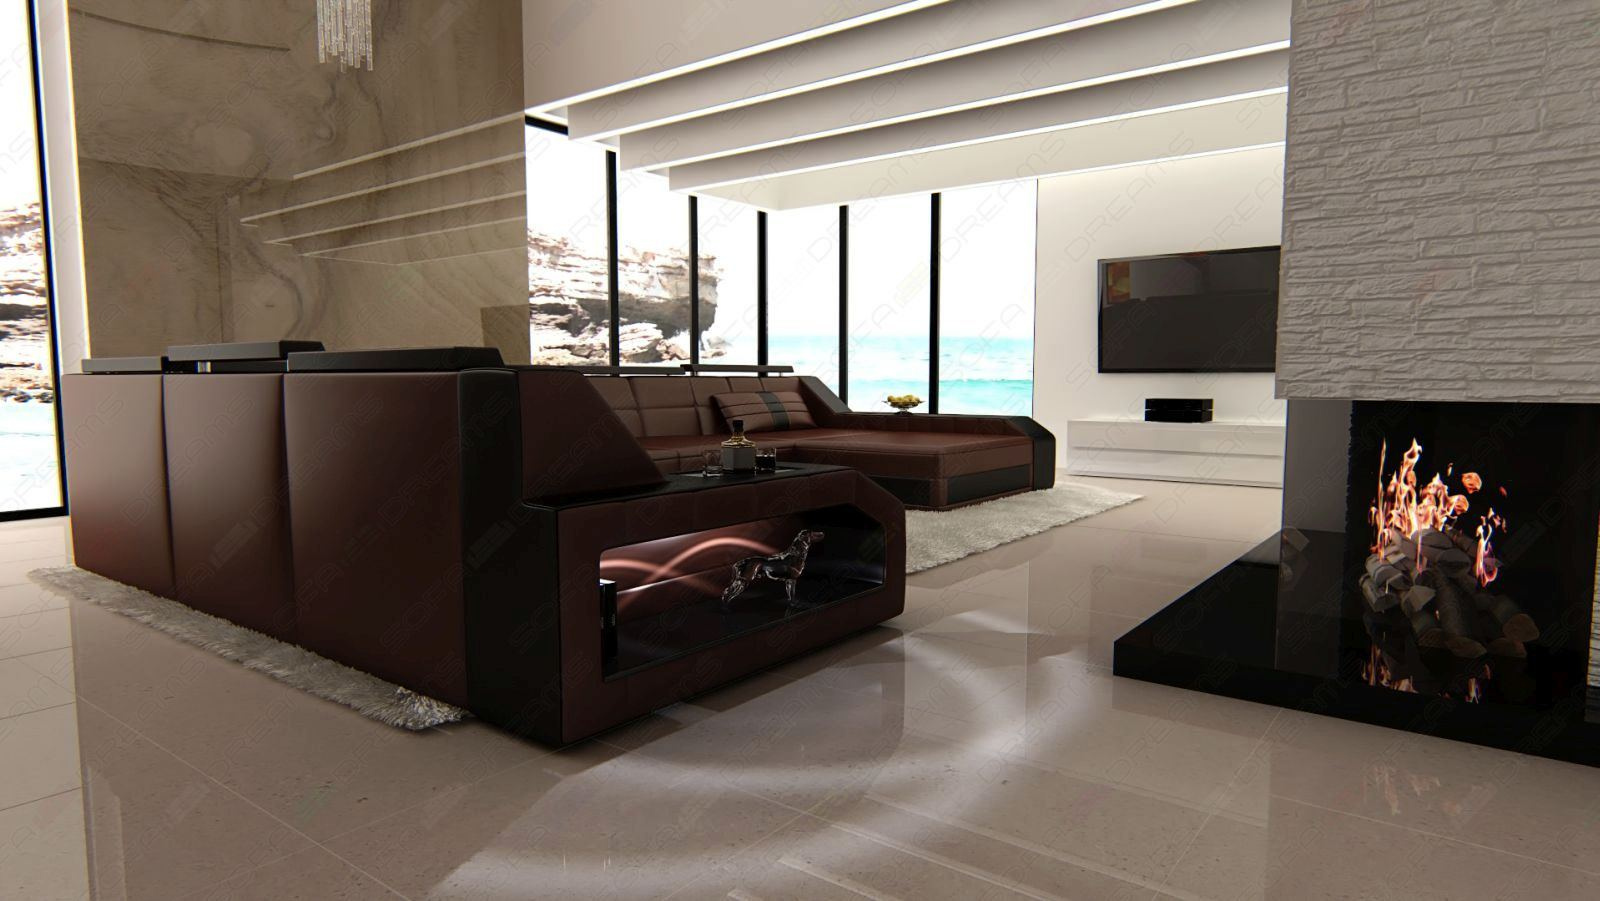 ledersofa designercouch ecksofa matera xxl u form led beleuchtung luxus sofa ebay. Black Bedroom Furniture Sets. Home Design Ideas